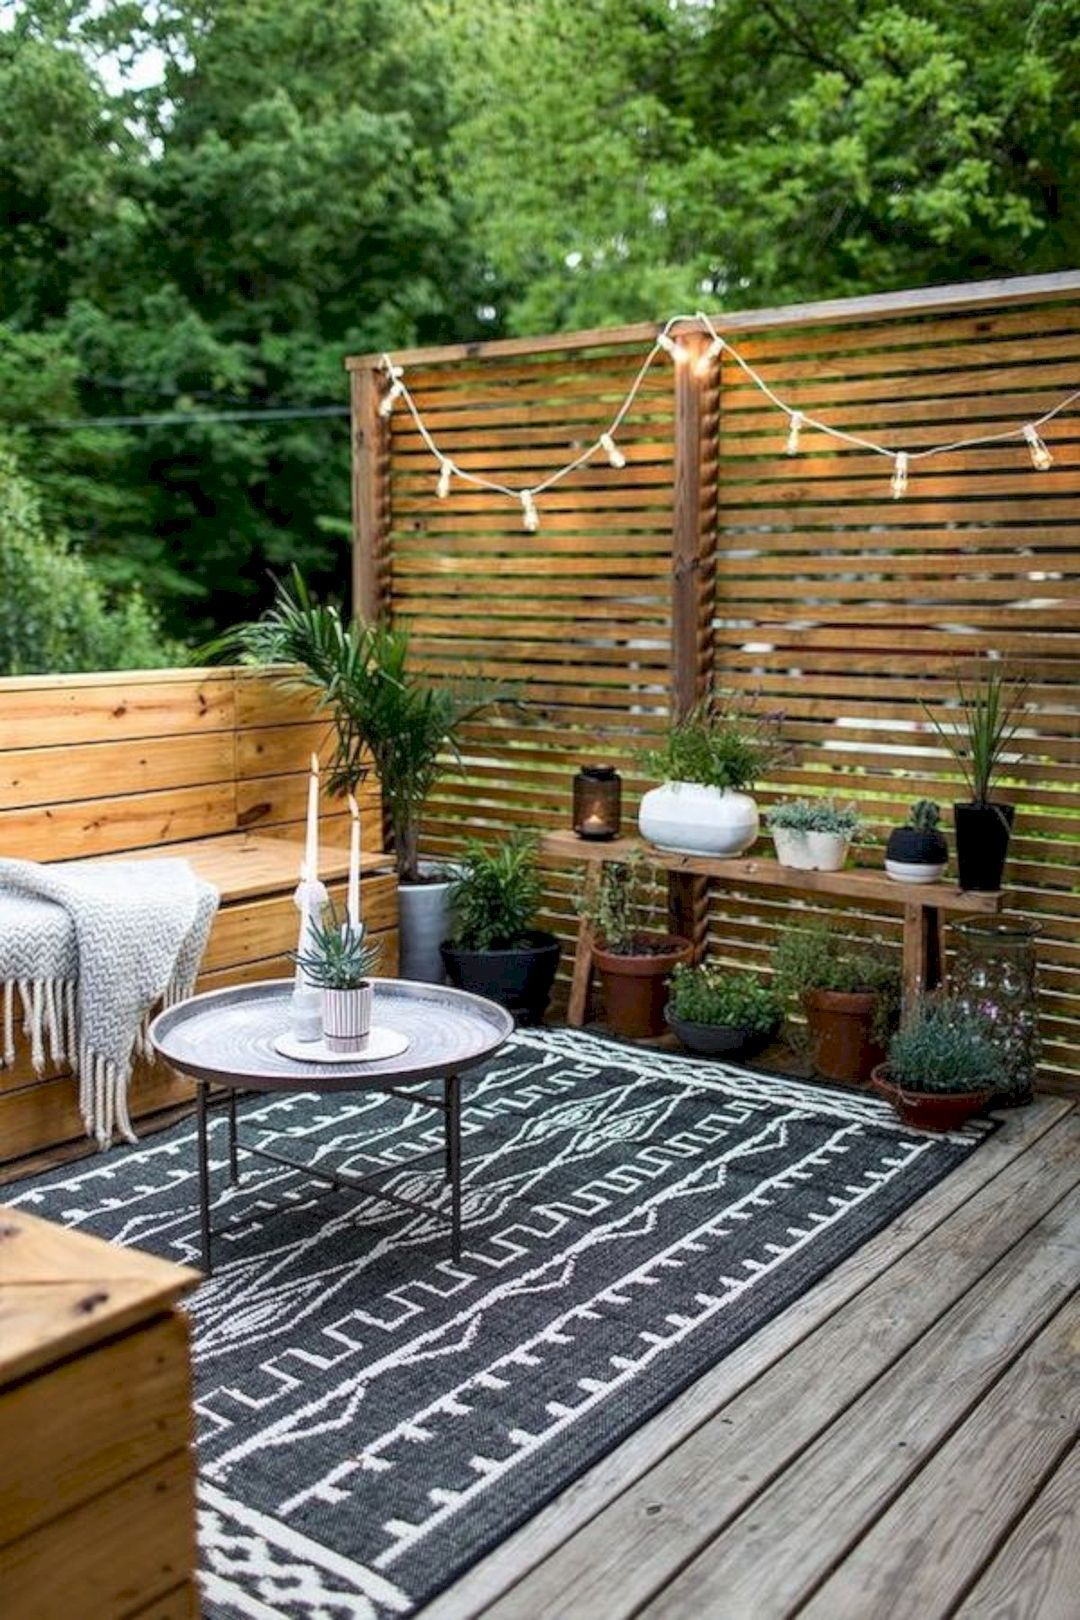 44 Best Patio Decorations On A Budget Https Www Futuristarchitecture